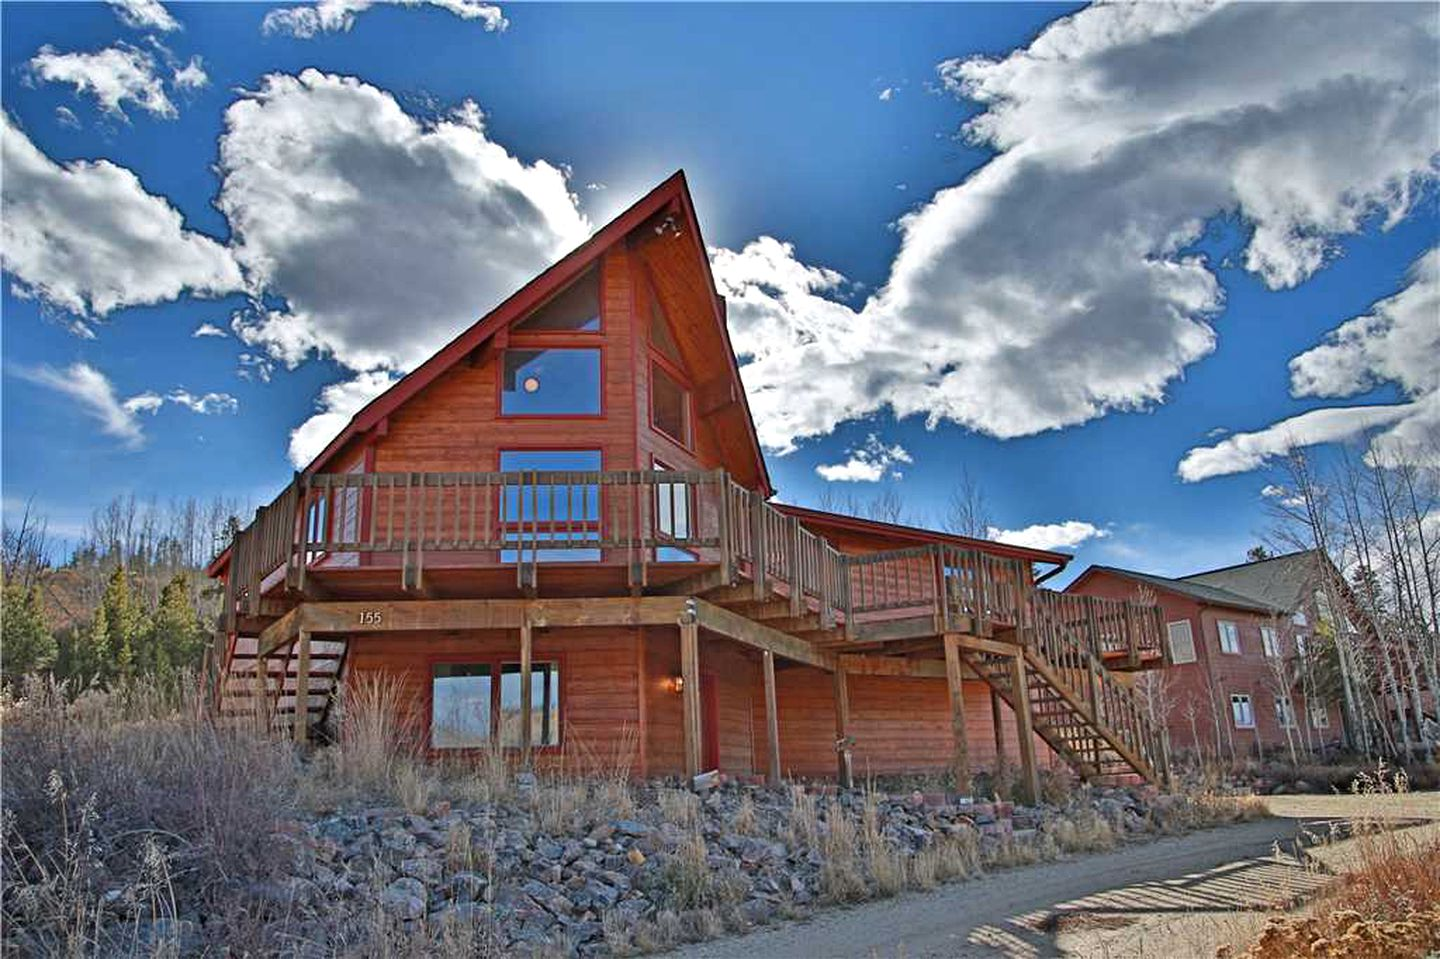 Cabins (Granby, Colorado, United States)